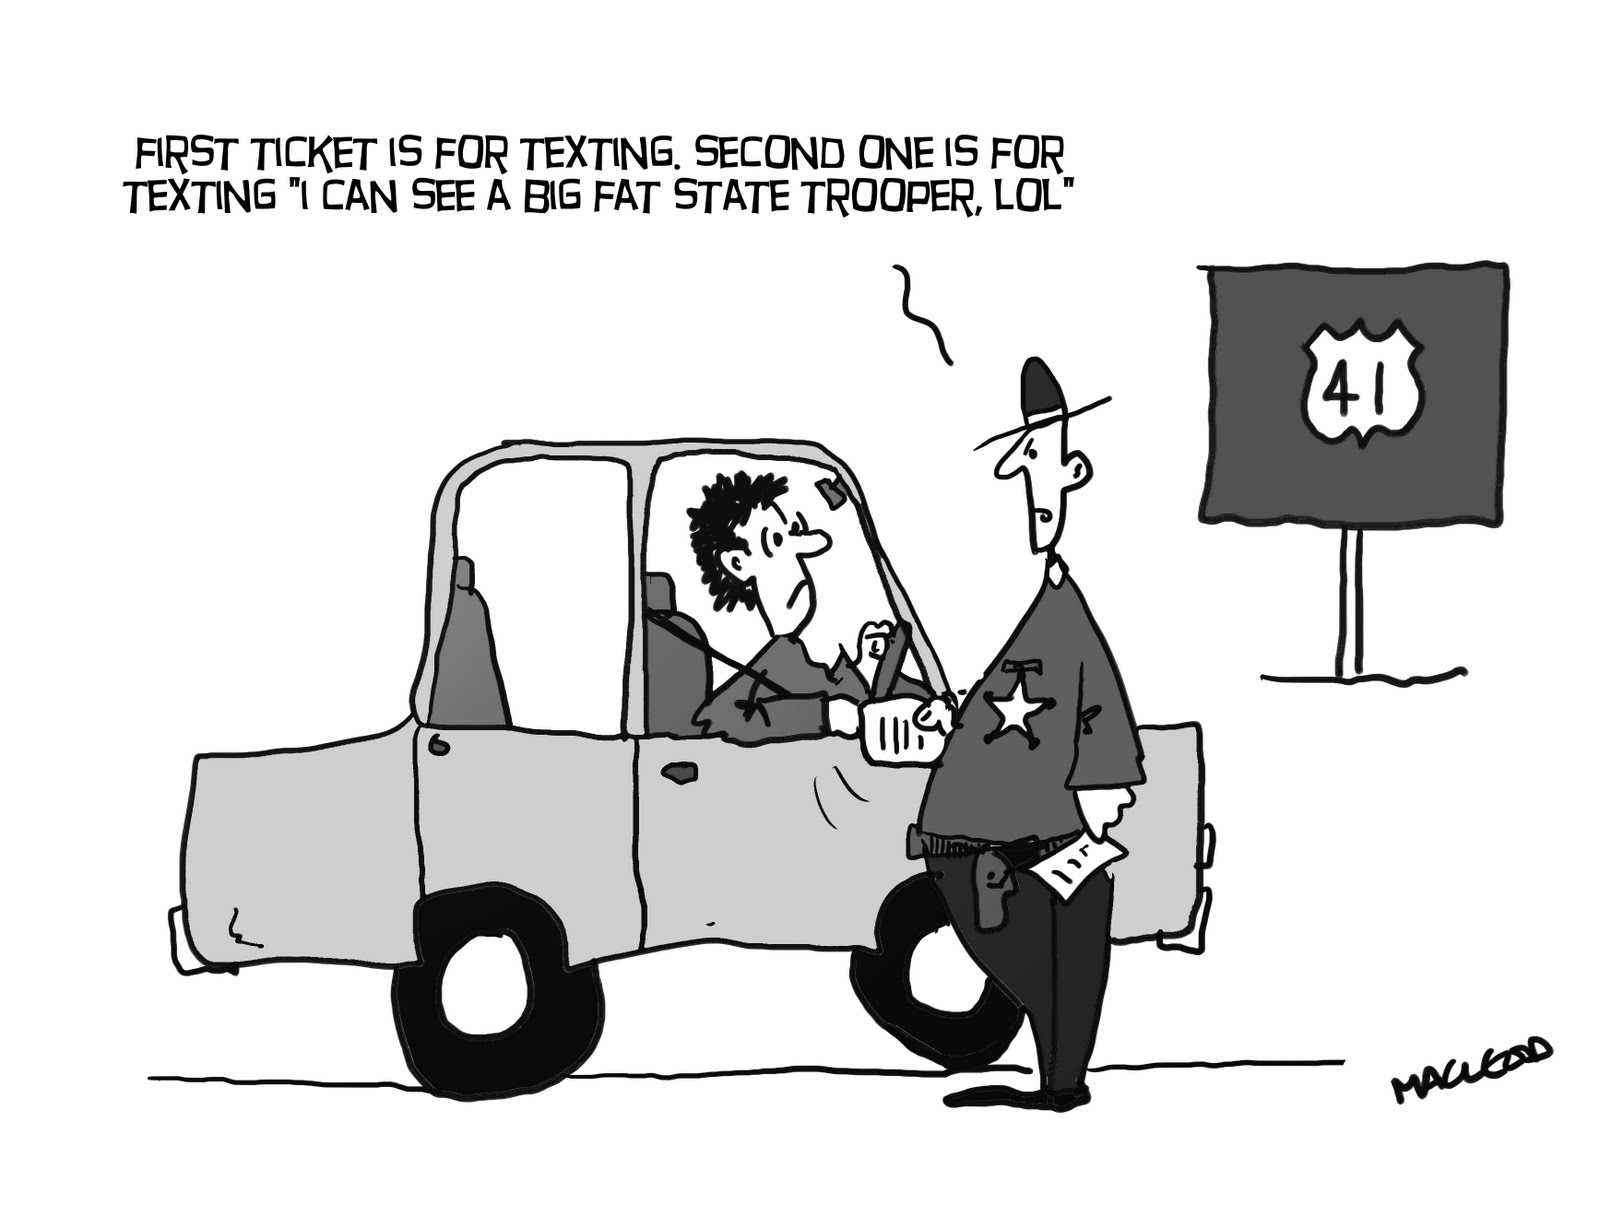 Texting And Driving Quotes Macleod Cartoons Texting While Driving Now Illegal In Indiana